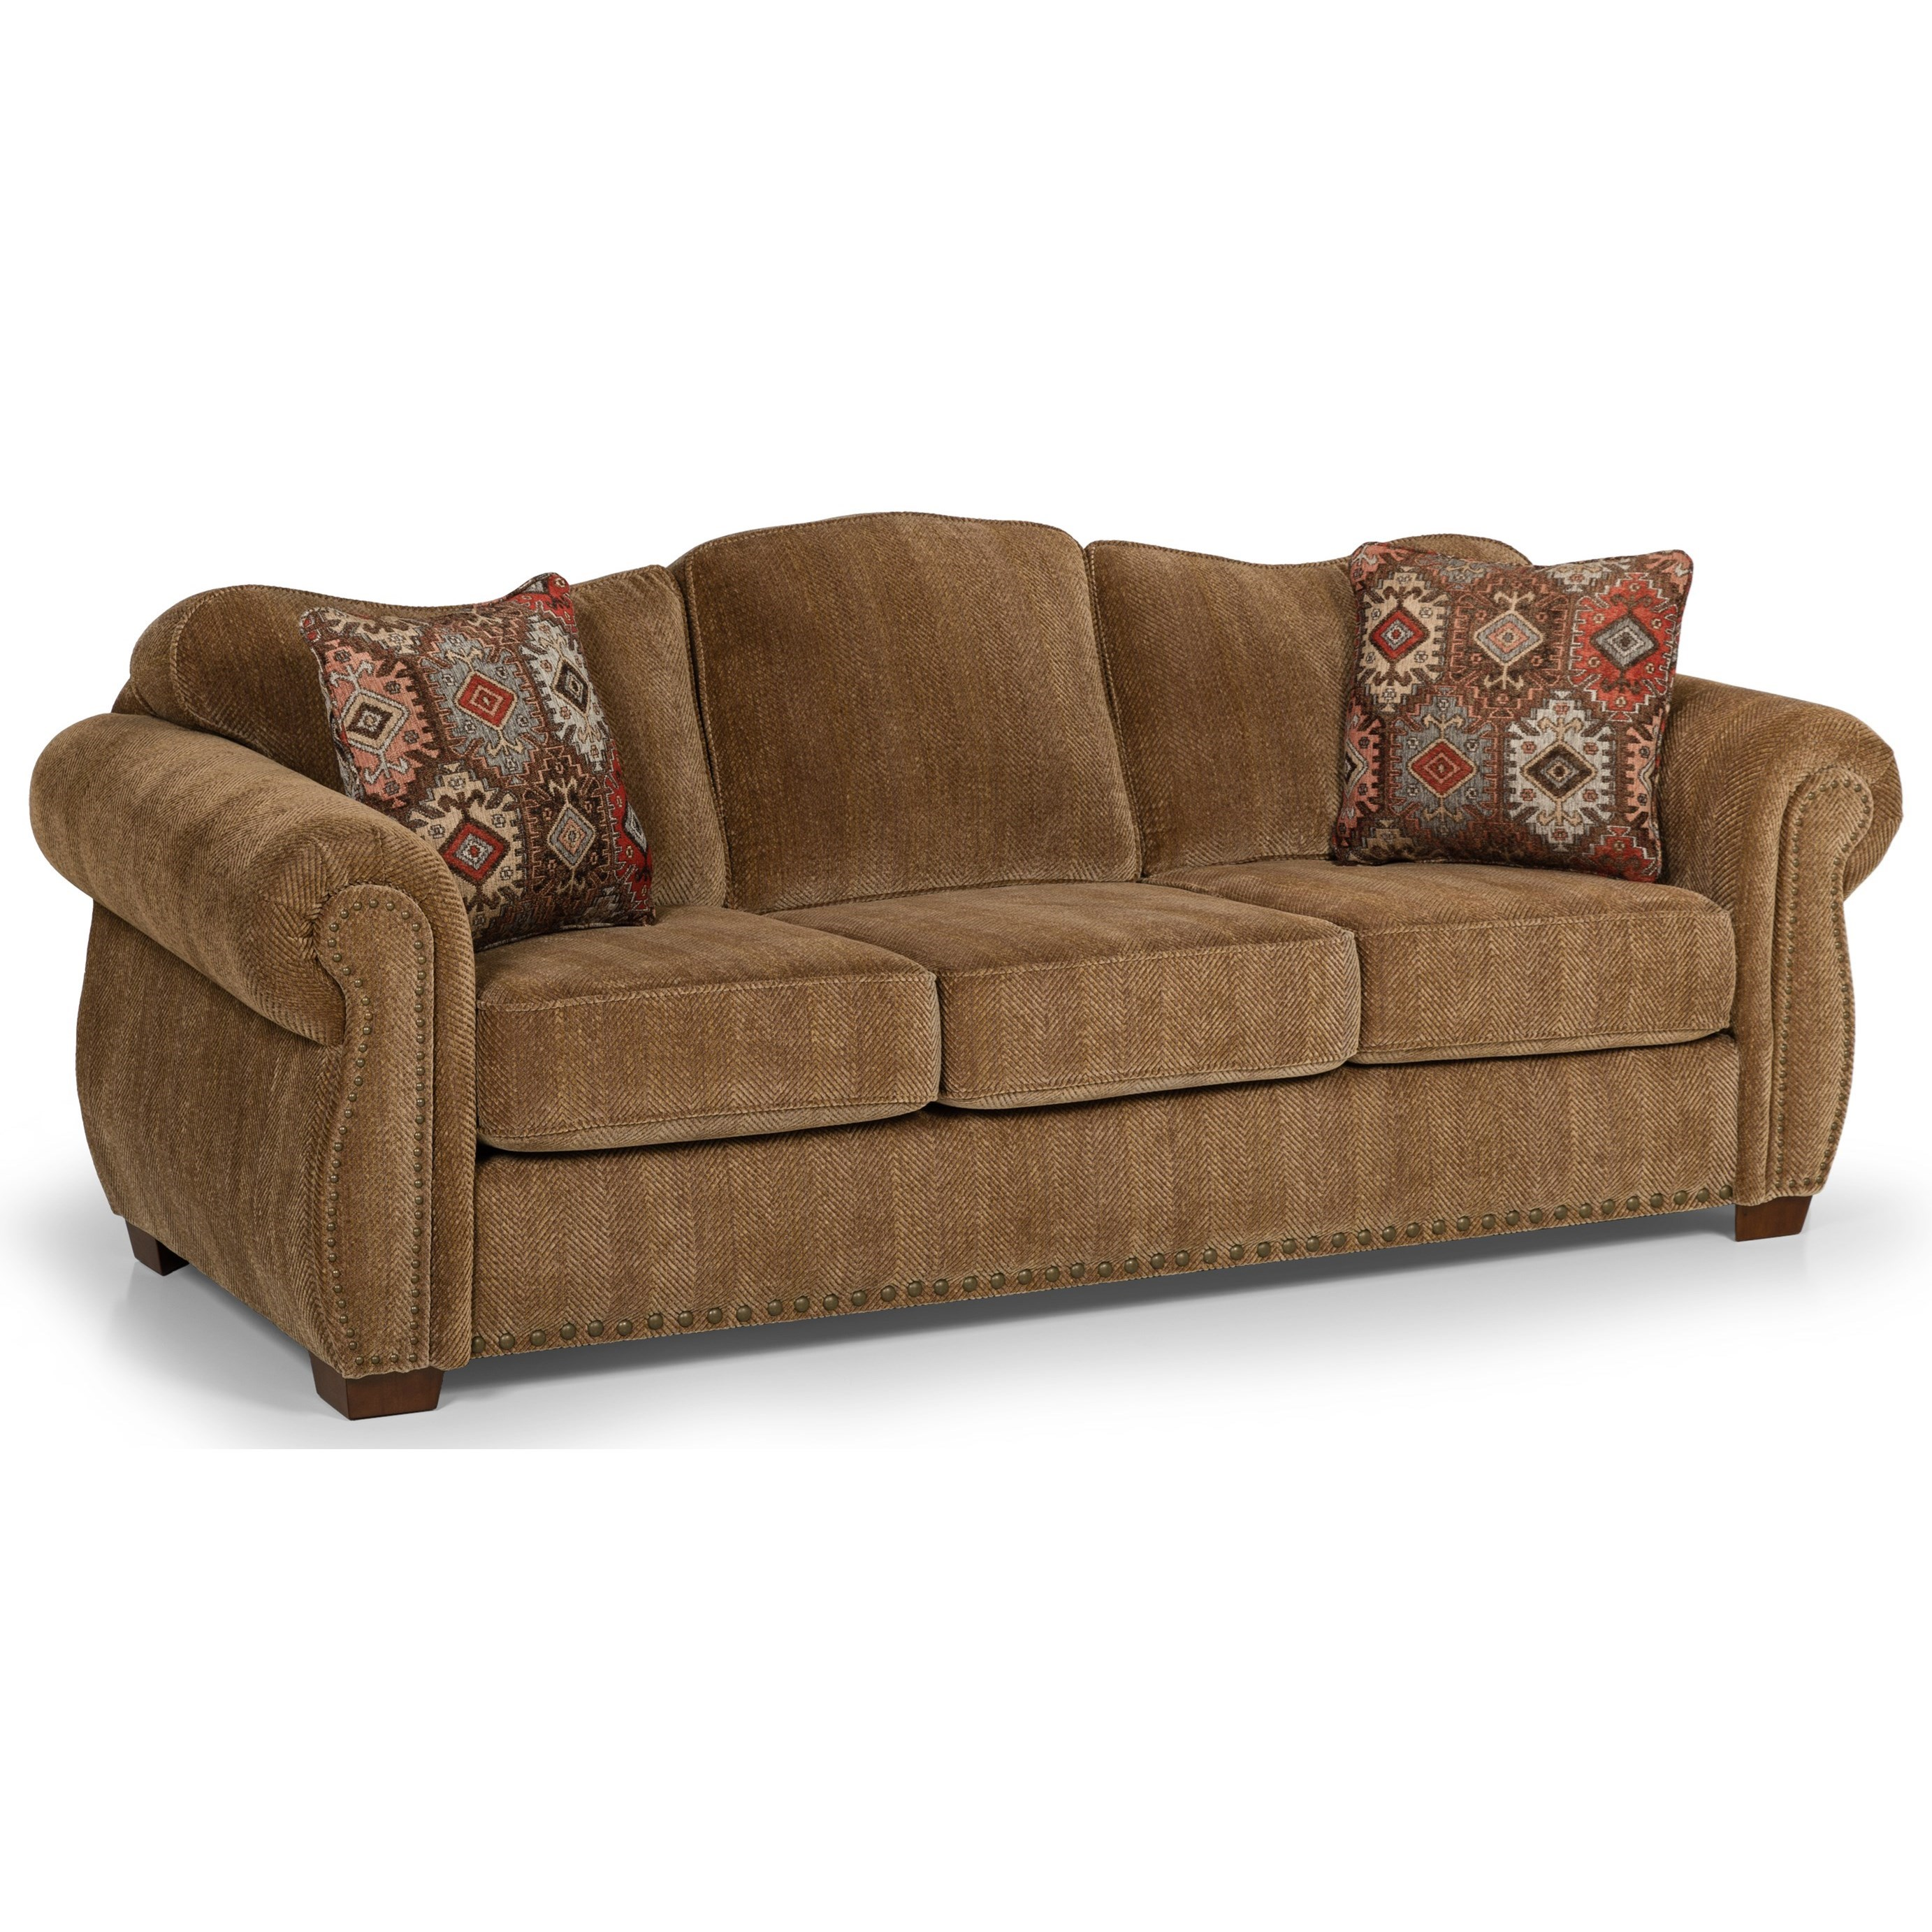 426 Sofa by Stanton at Wilson's Furniture